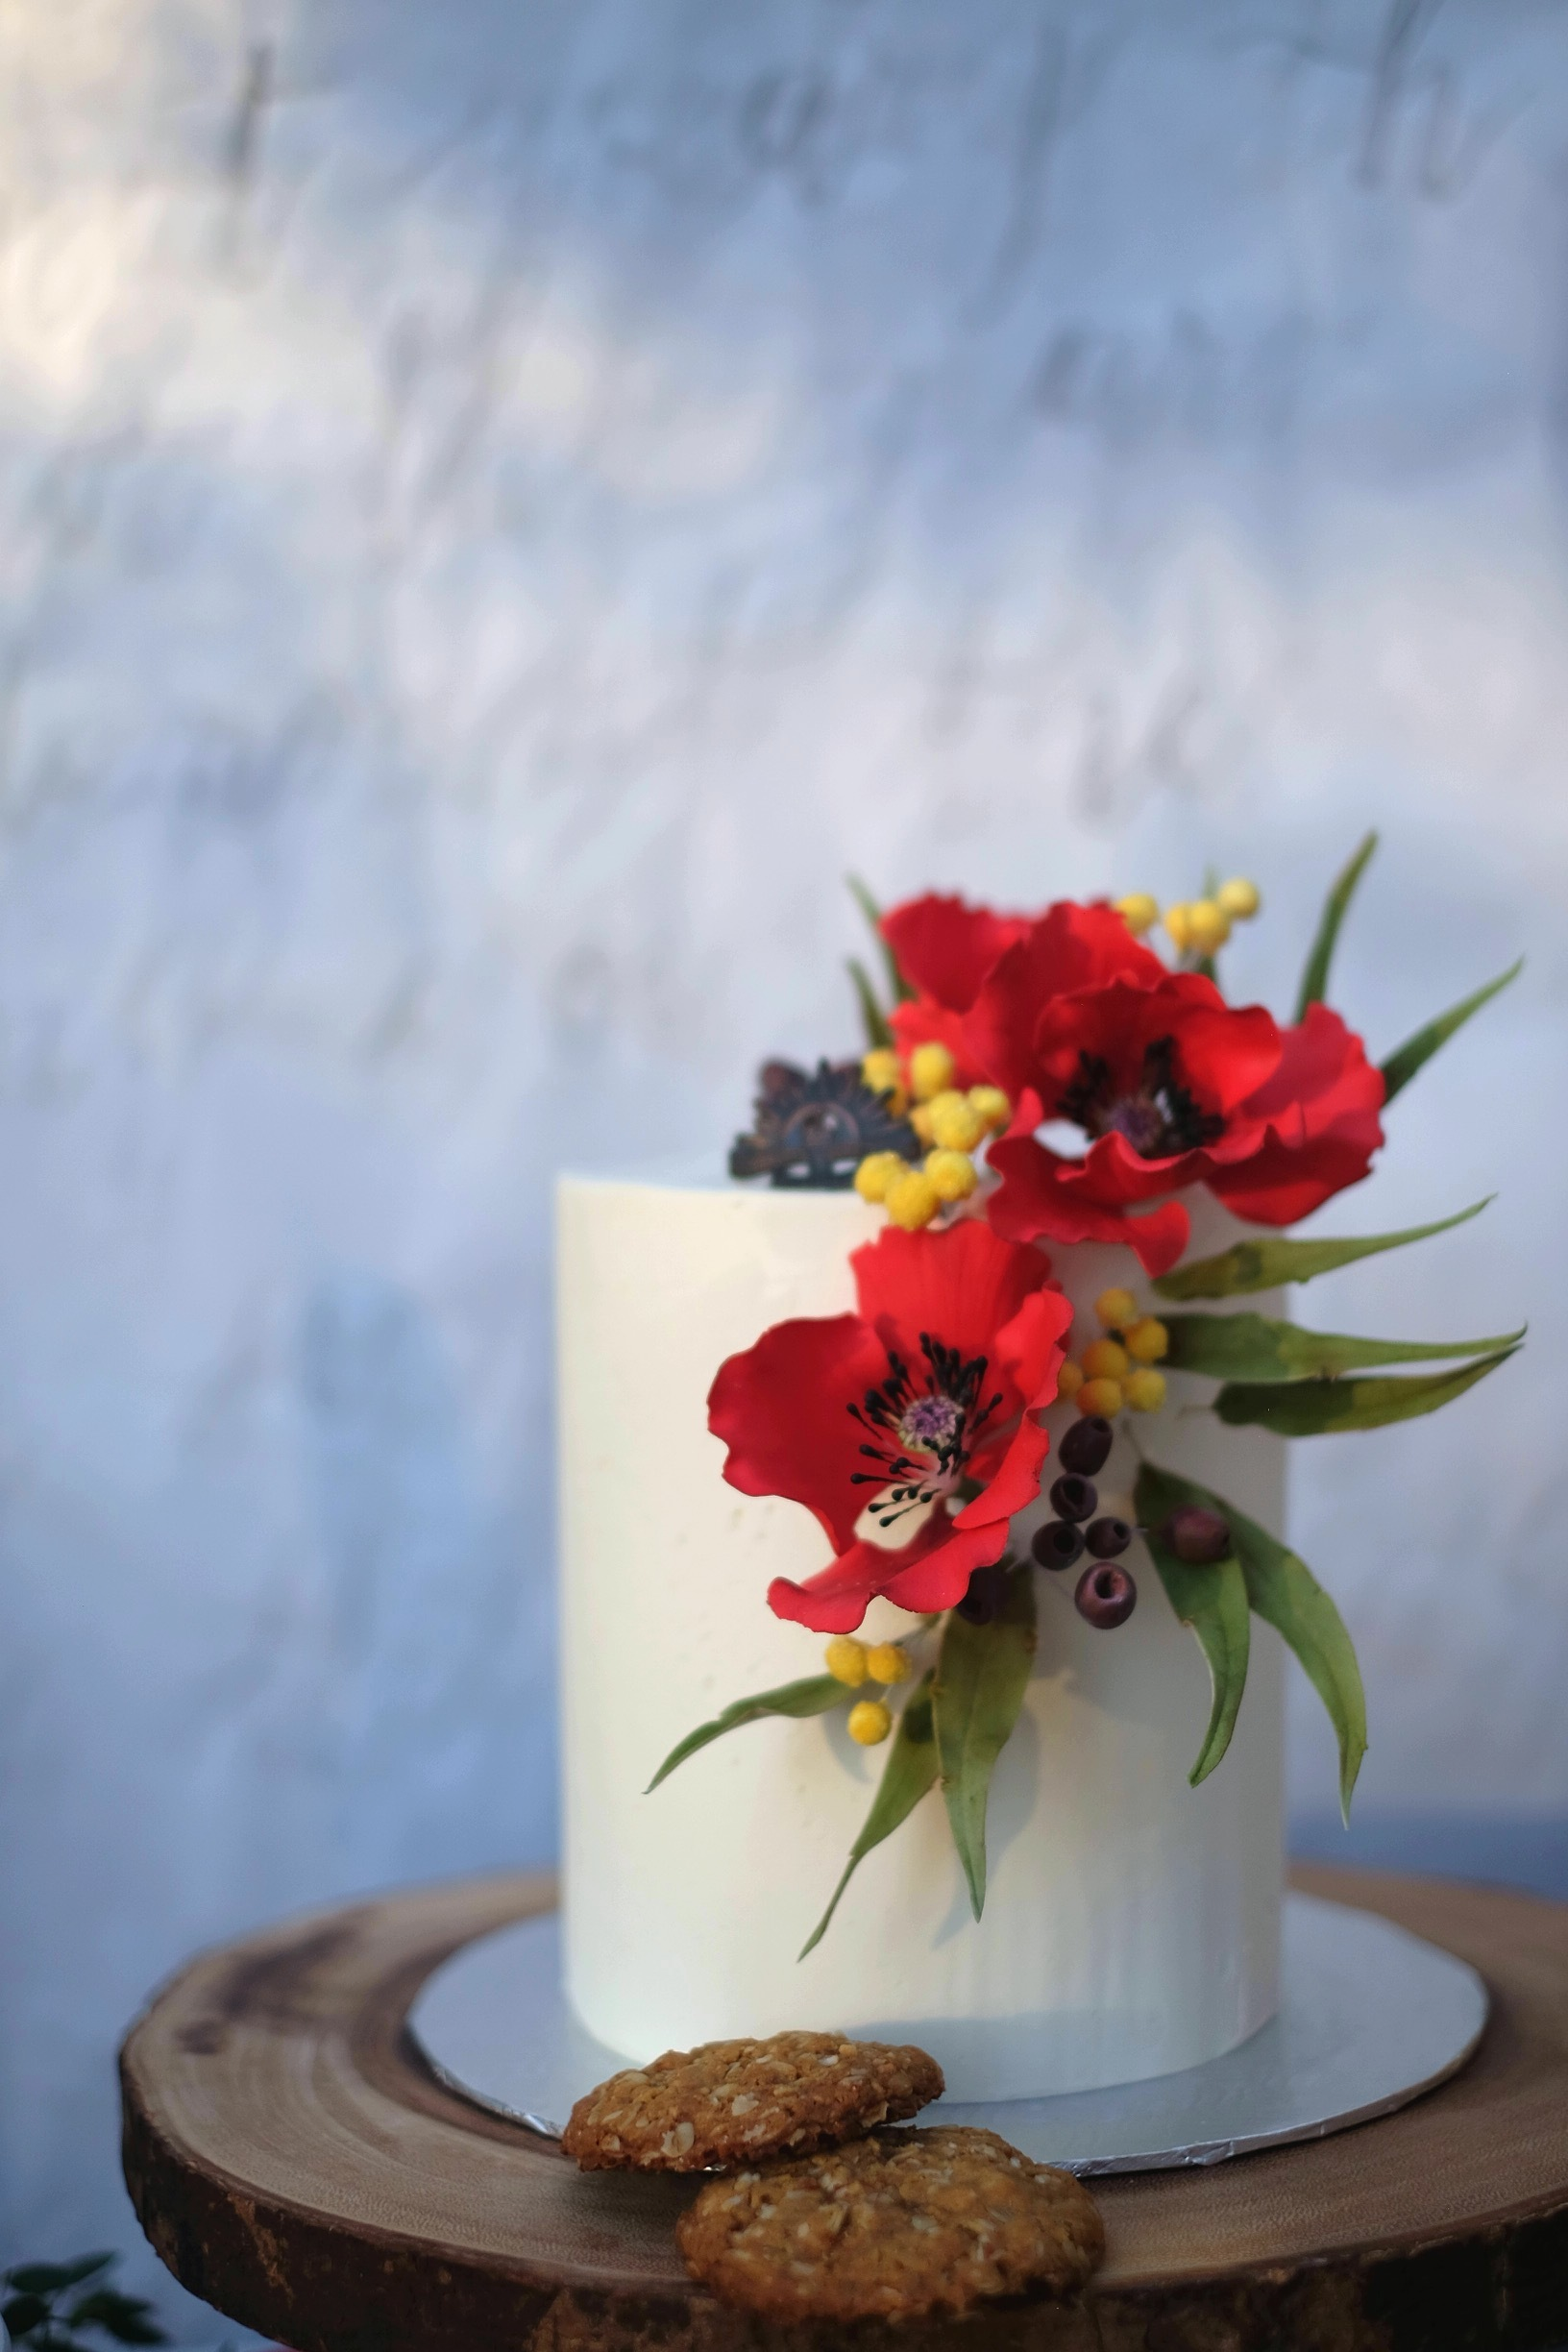 White fondant with red sugar flowers